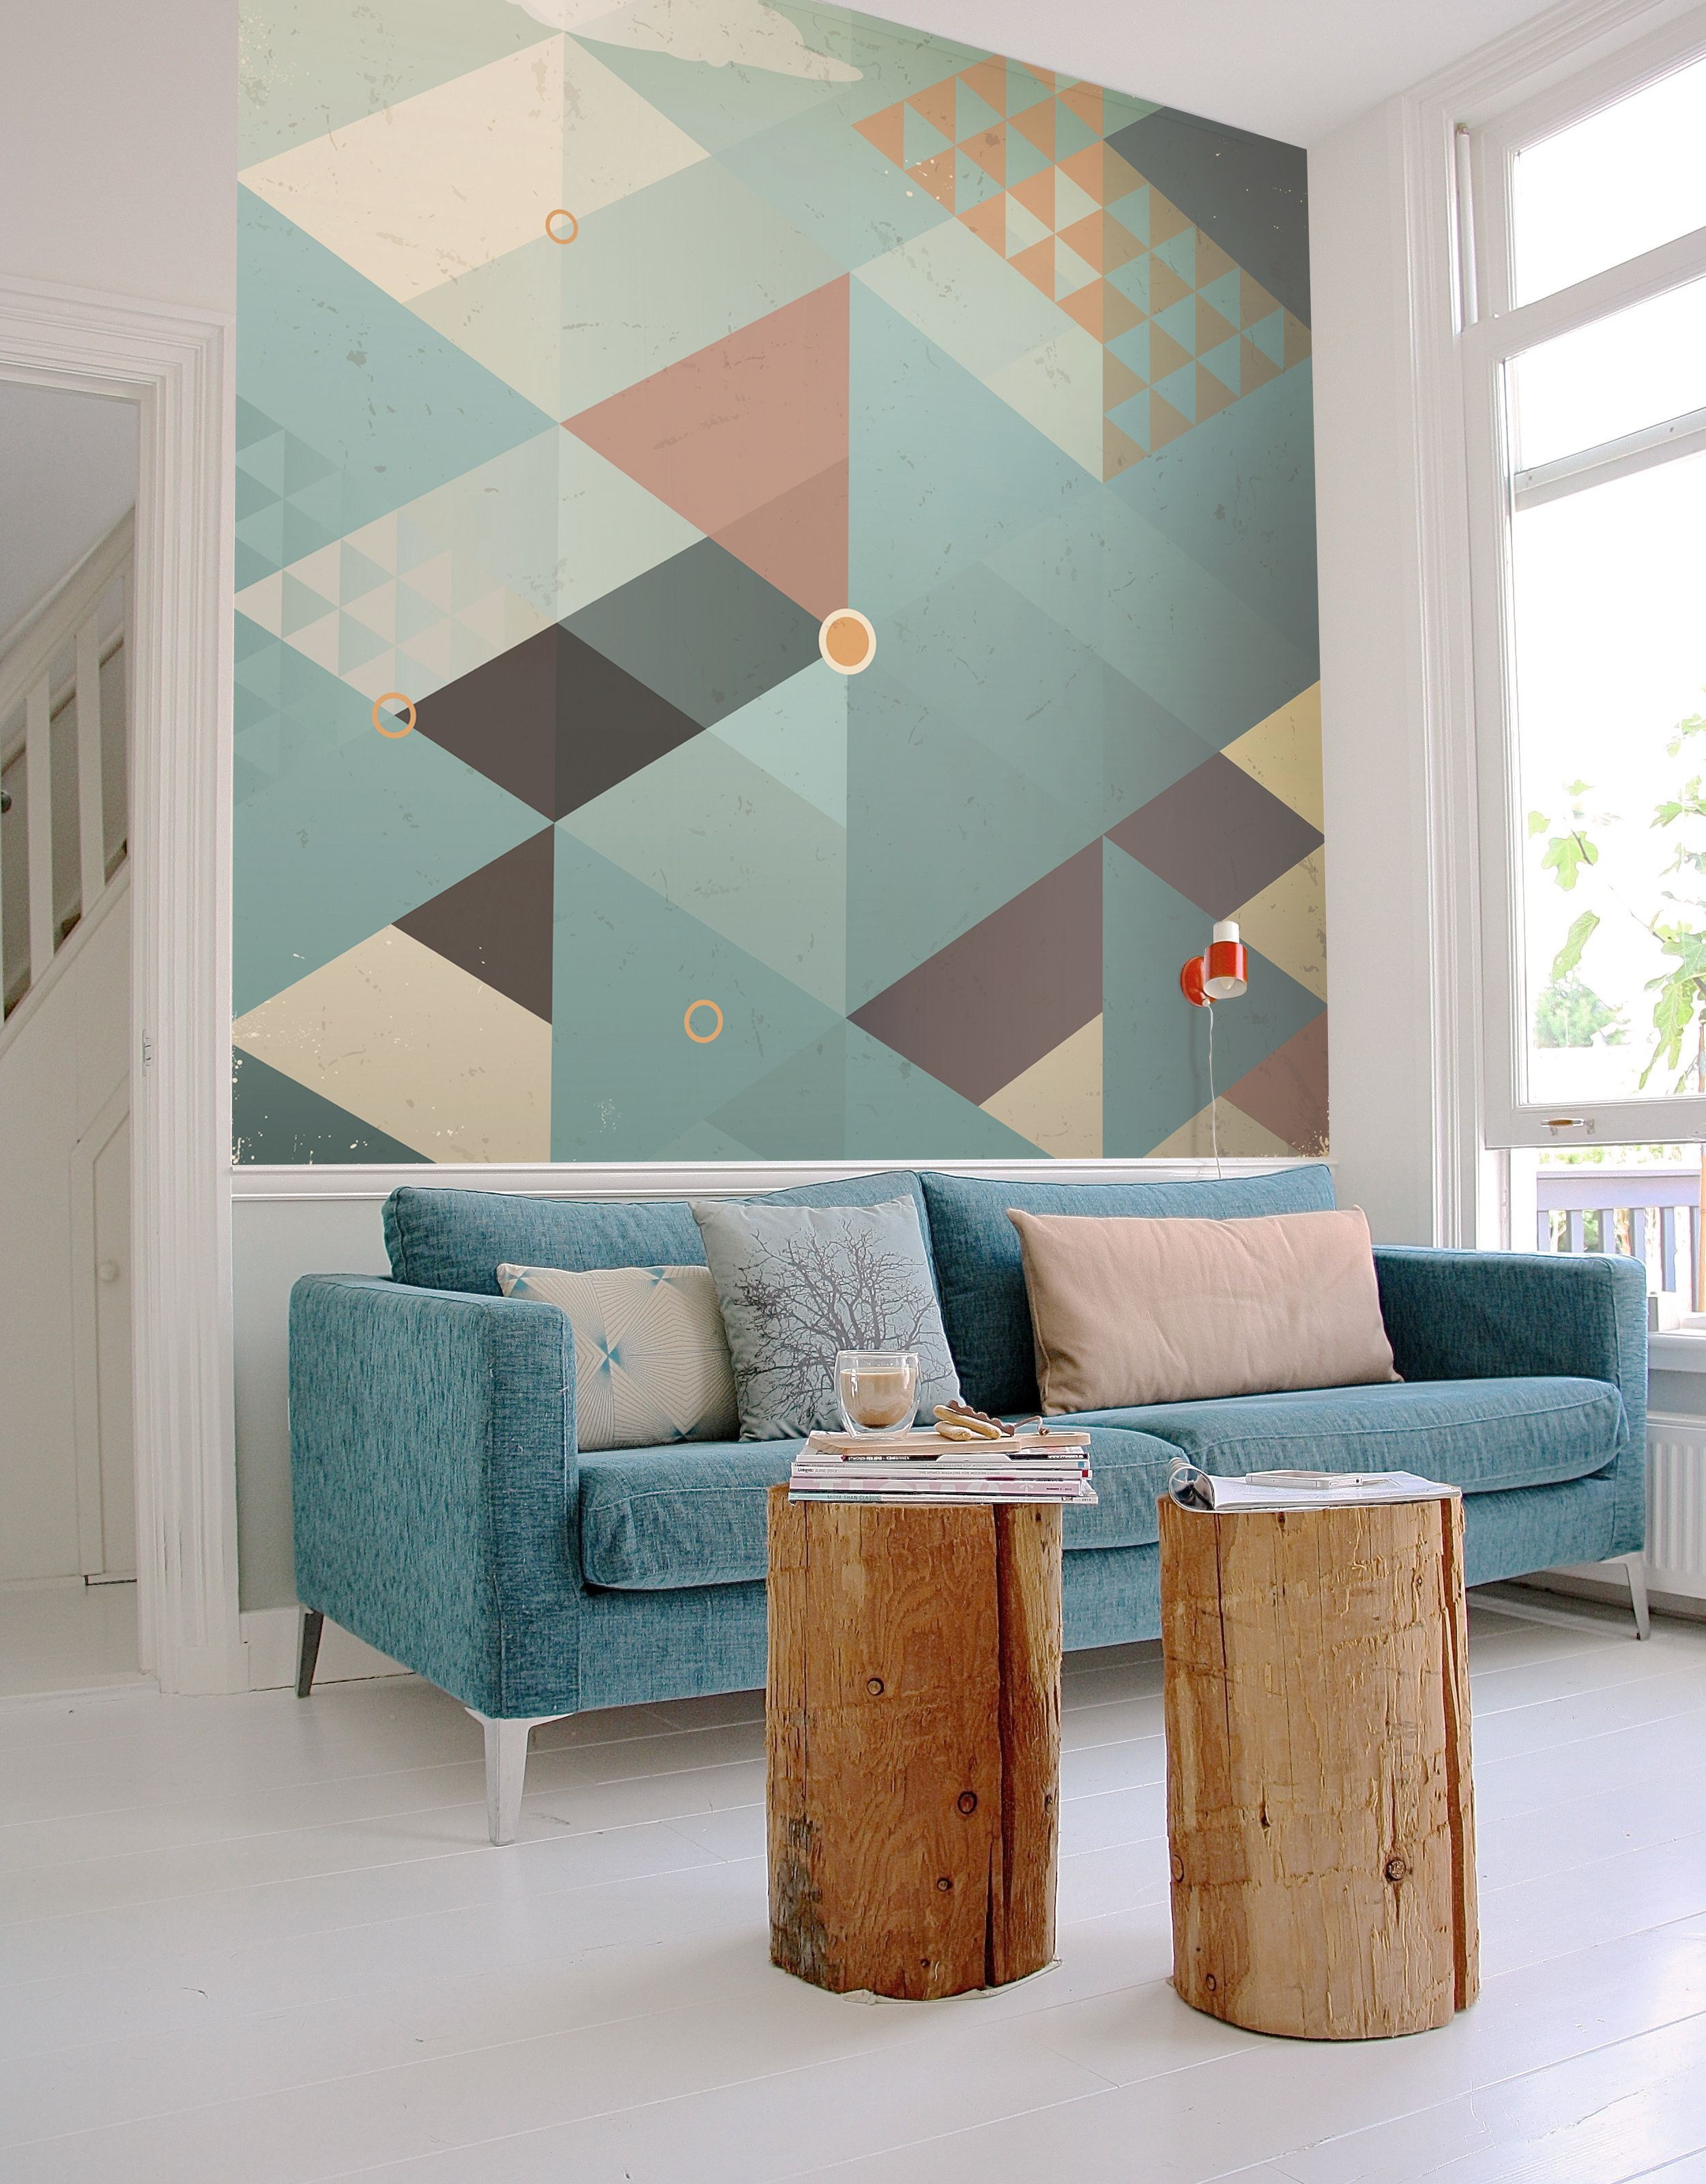 Wall Mural Abstract Retro Geometric With Clouds   Abstract U2022 PIXERSIZE.com